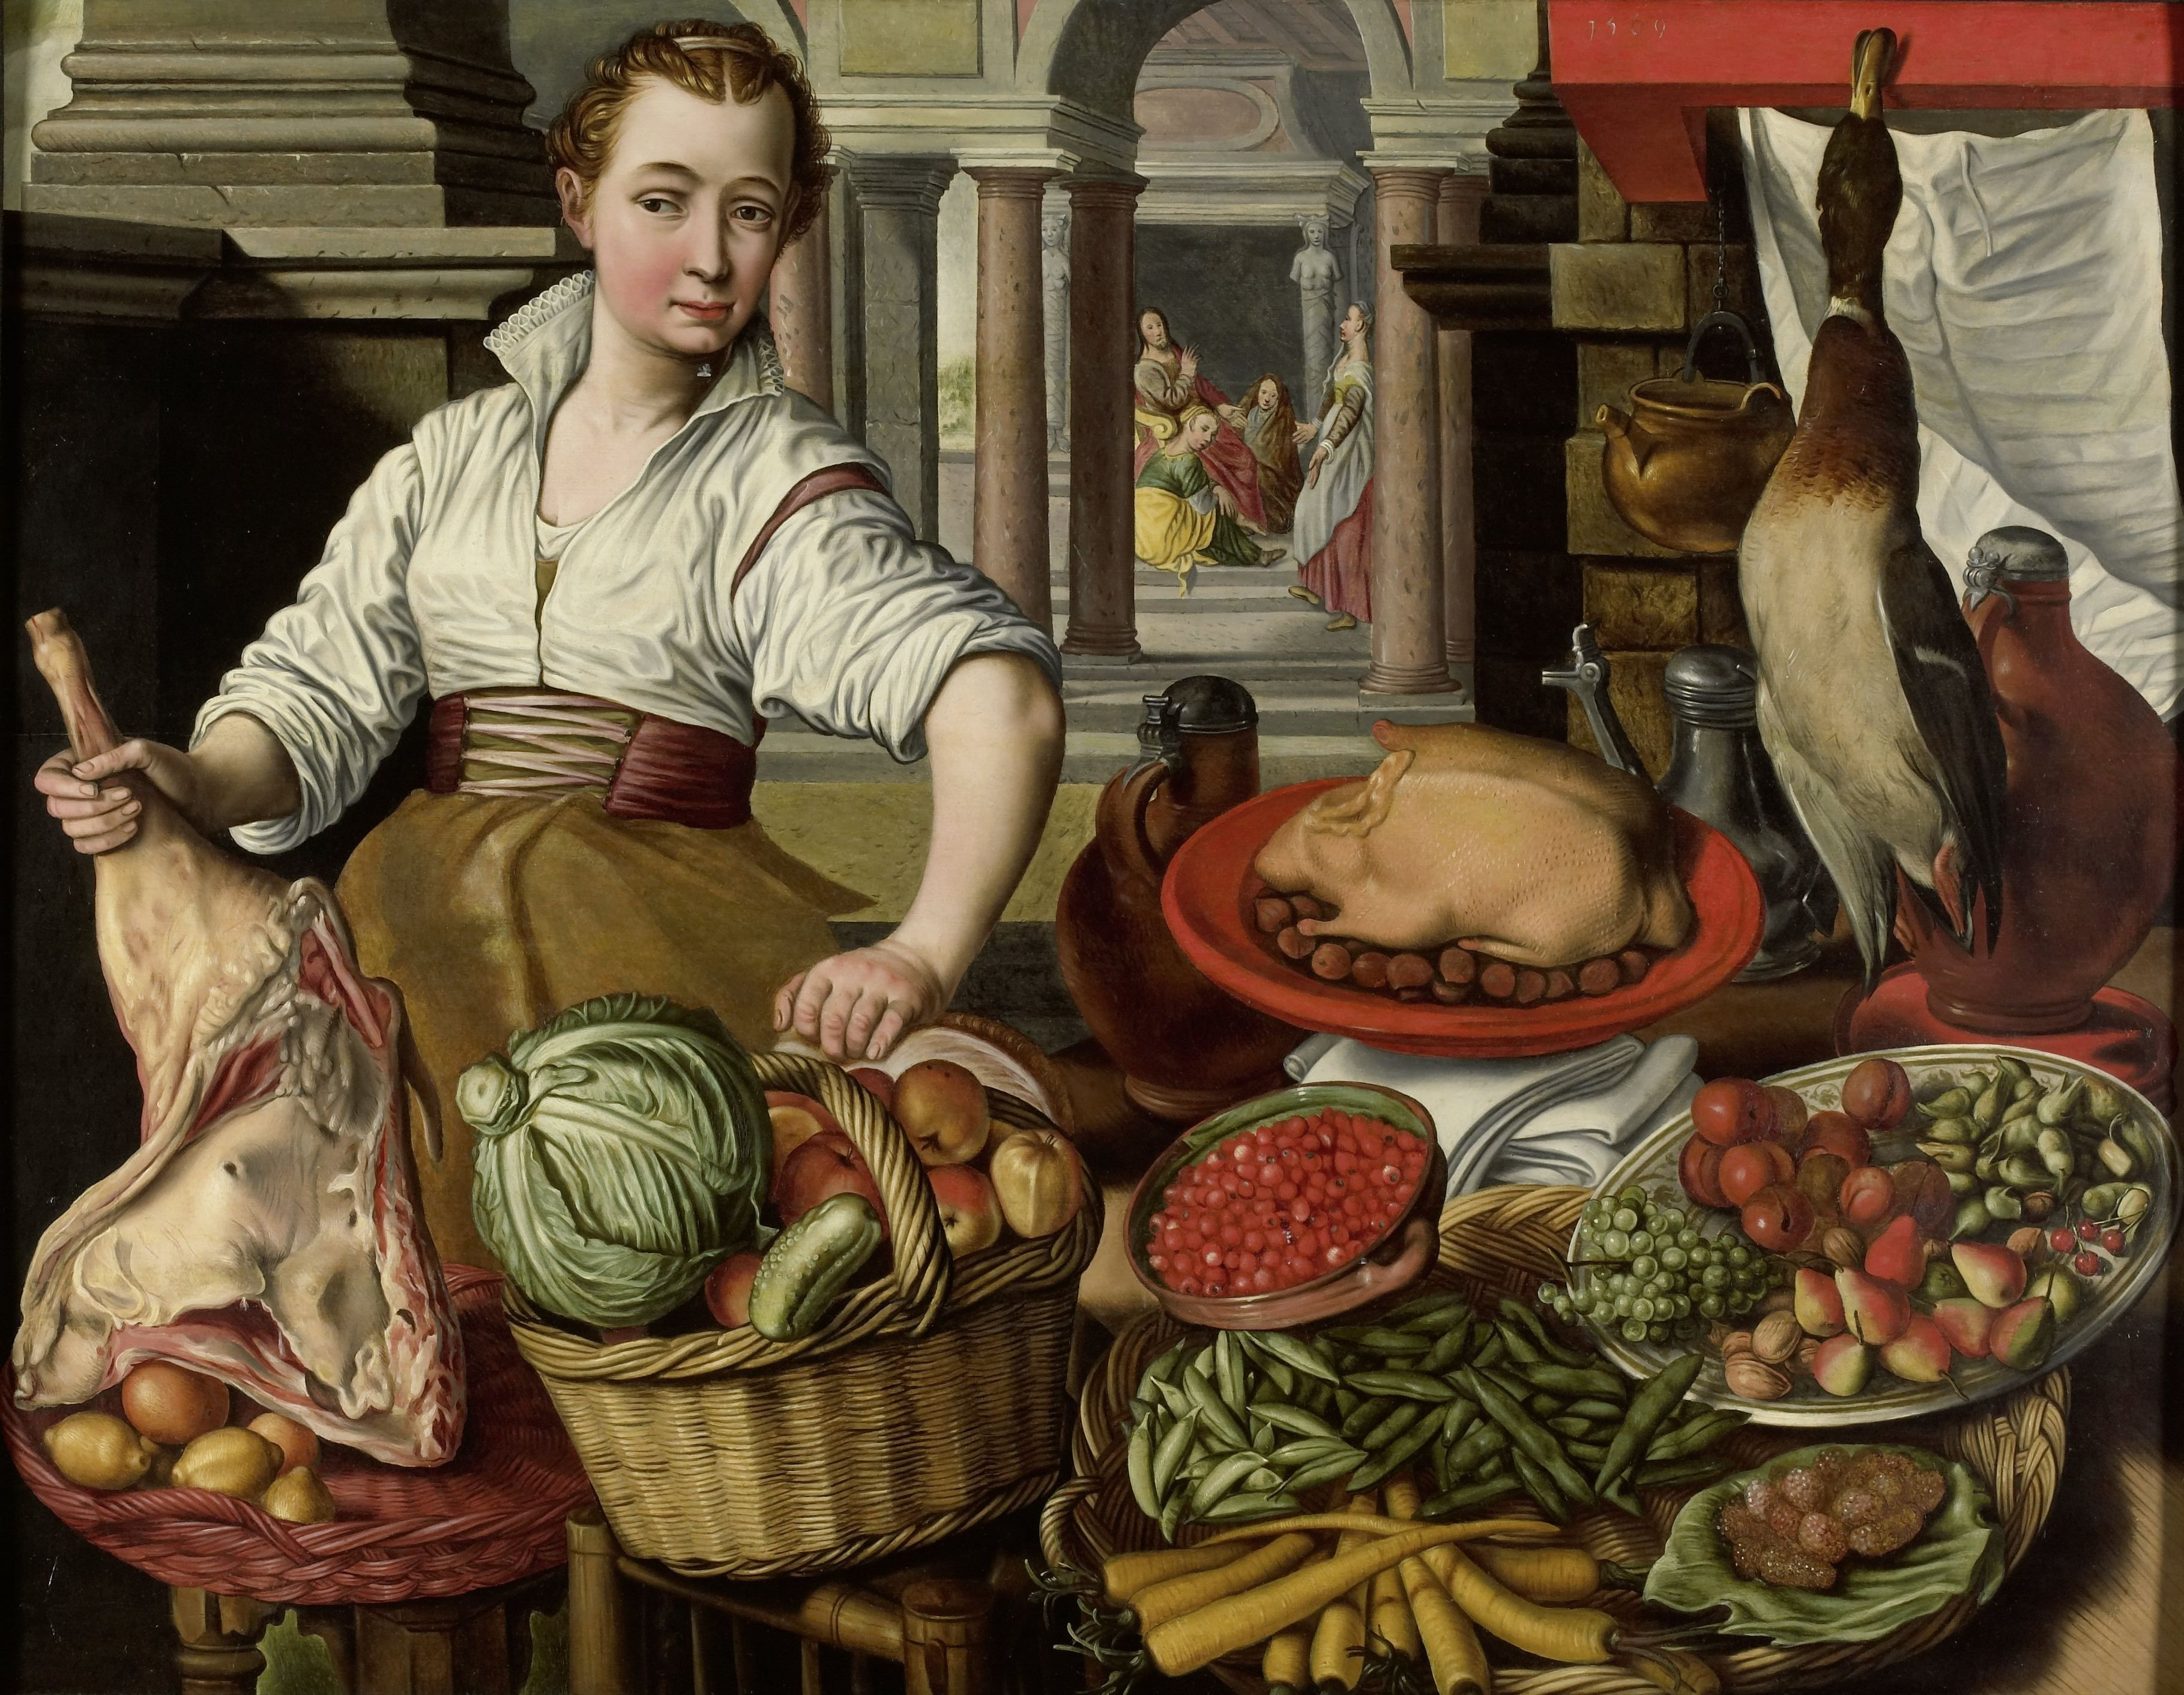 Joachim_Bueckelaer_-_Kitchen_Piece,_with_Jesus_in_the_House_of_Martha_and_Mary_in_the_background.jpg (3638×2824) INCREDIBLE detail in this one